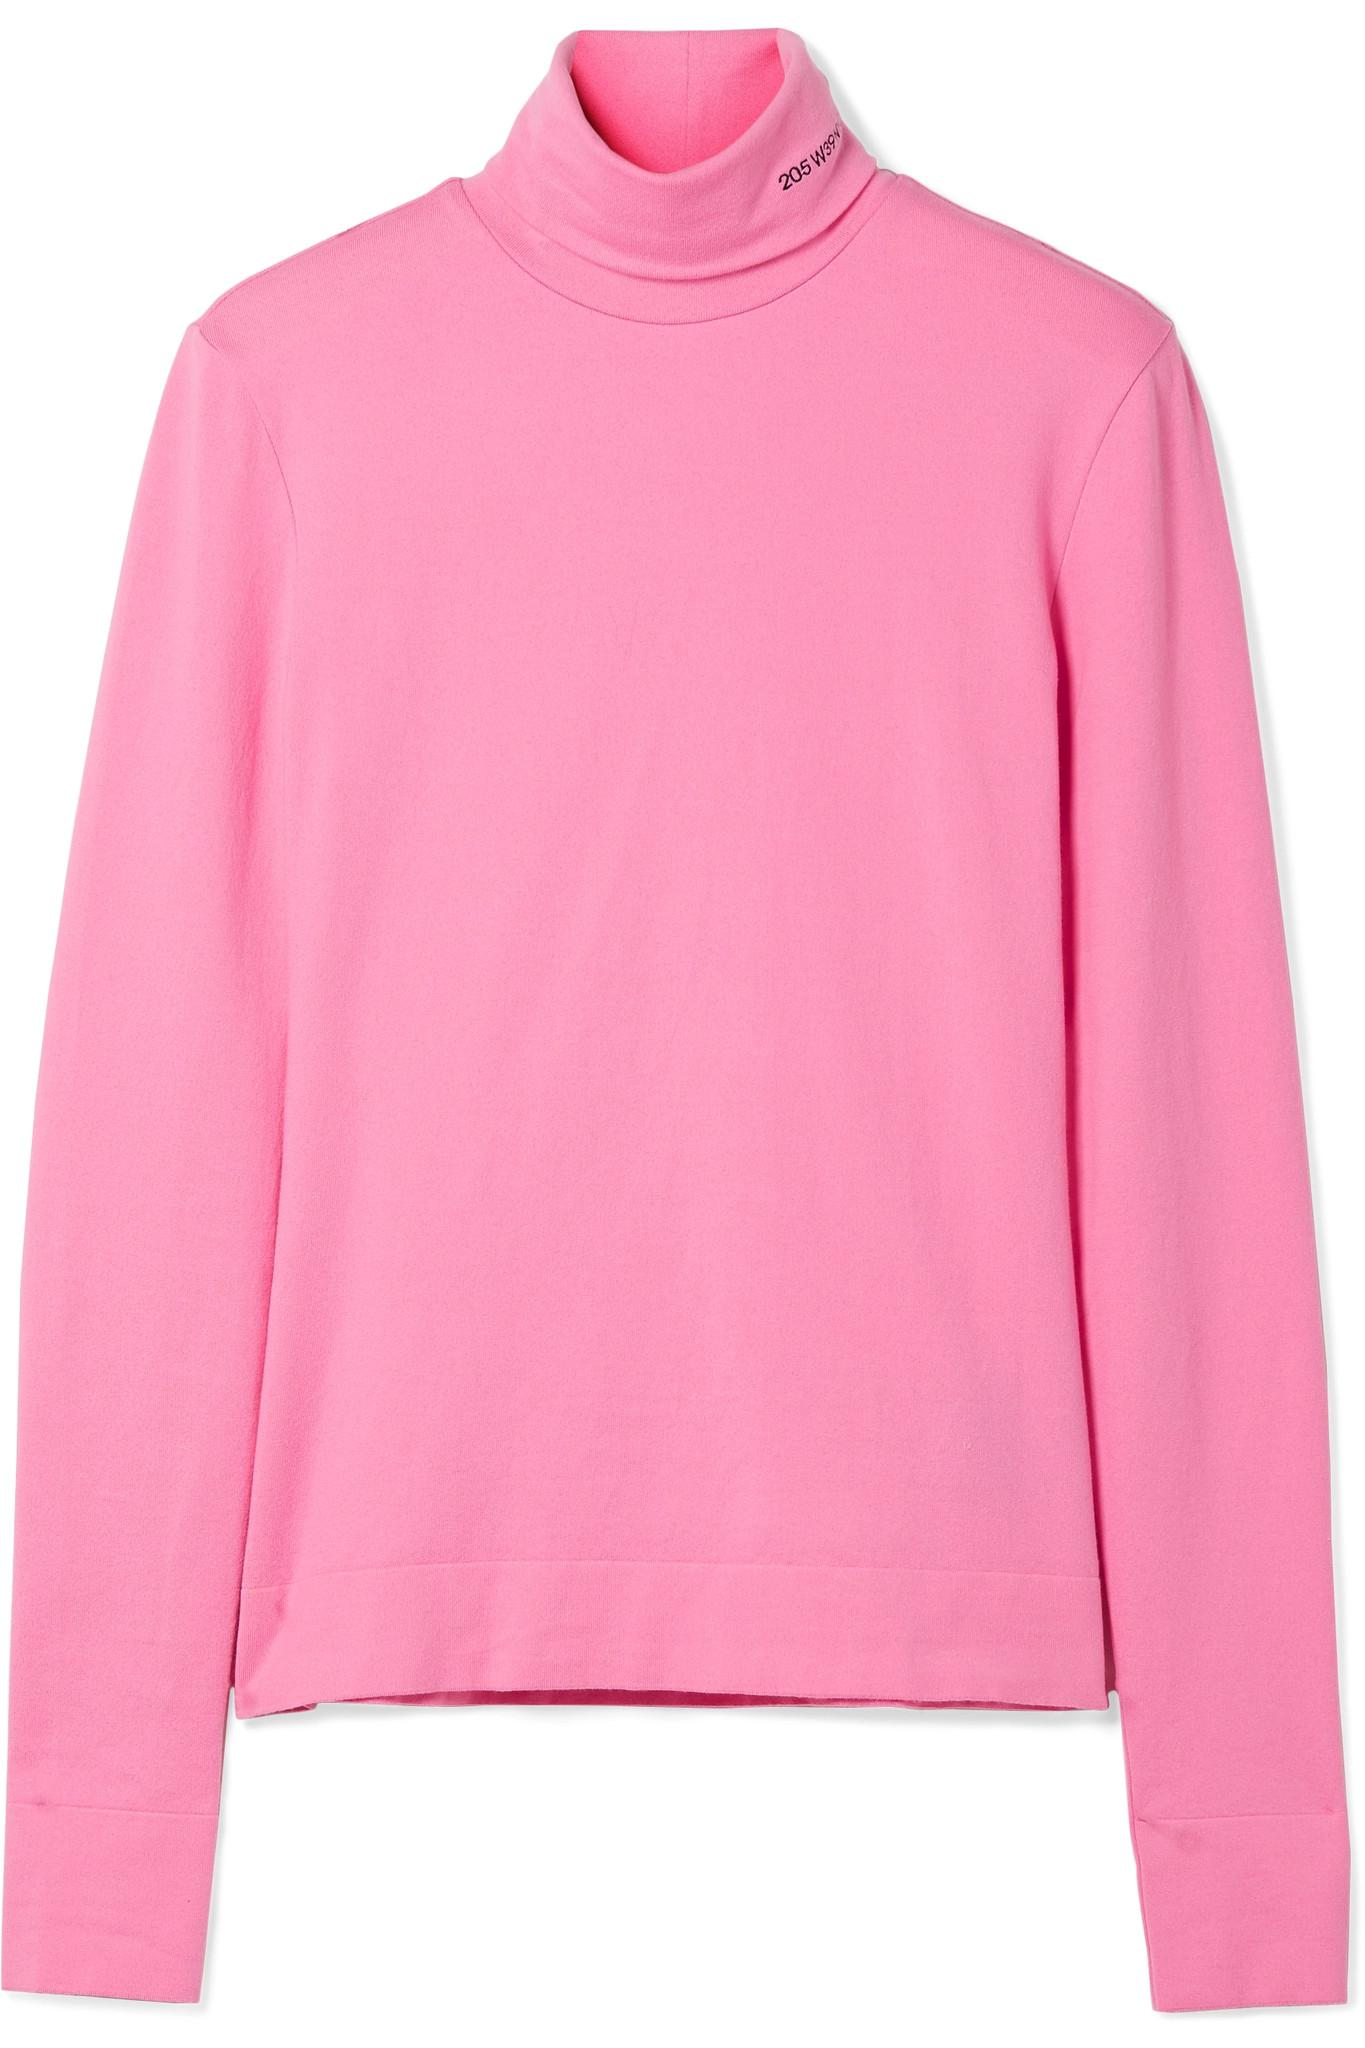 Embroidered Wool And Cotton-blend Sweater - Baby pink CALVIN KLEIN 205W39NYC Clearance Marketable Discount Wiki For Cheap Online Really Cheap yHiLWECtf